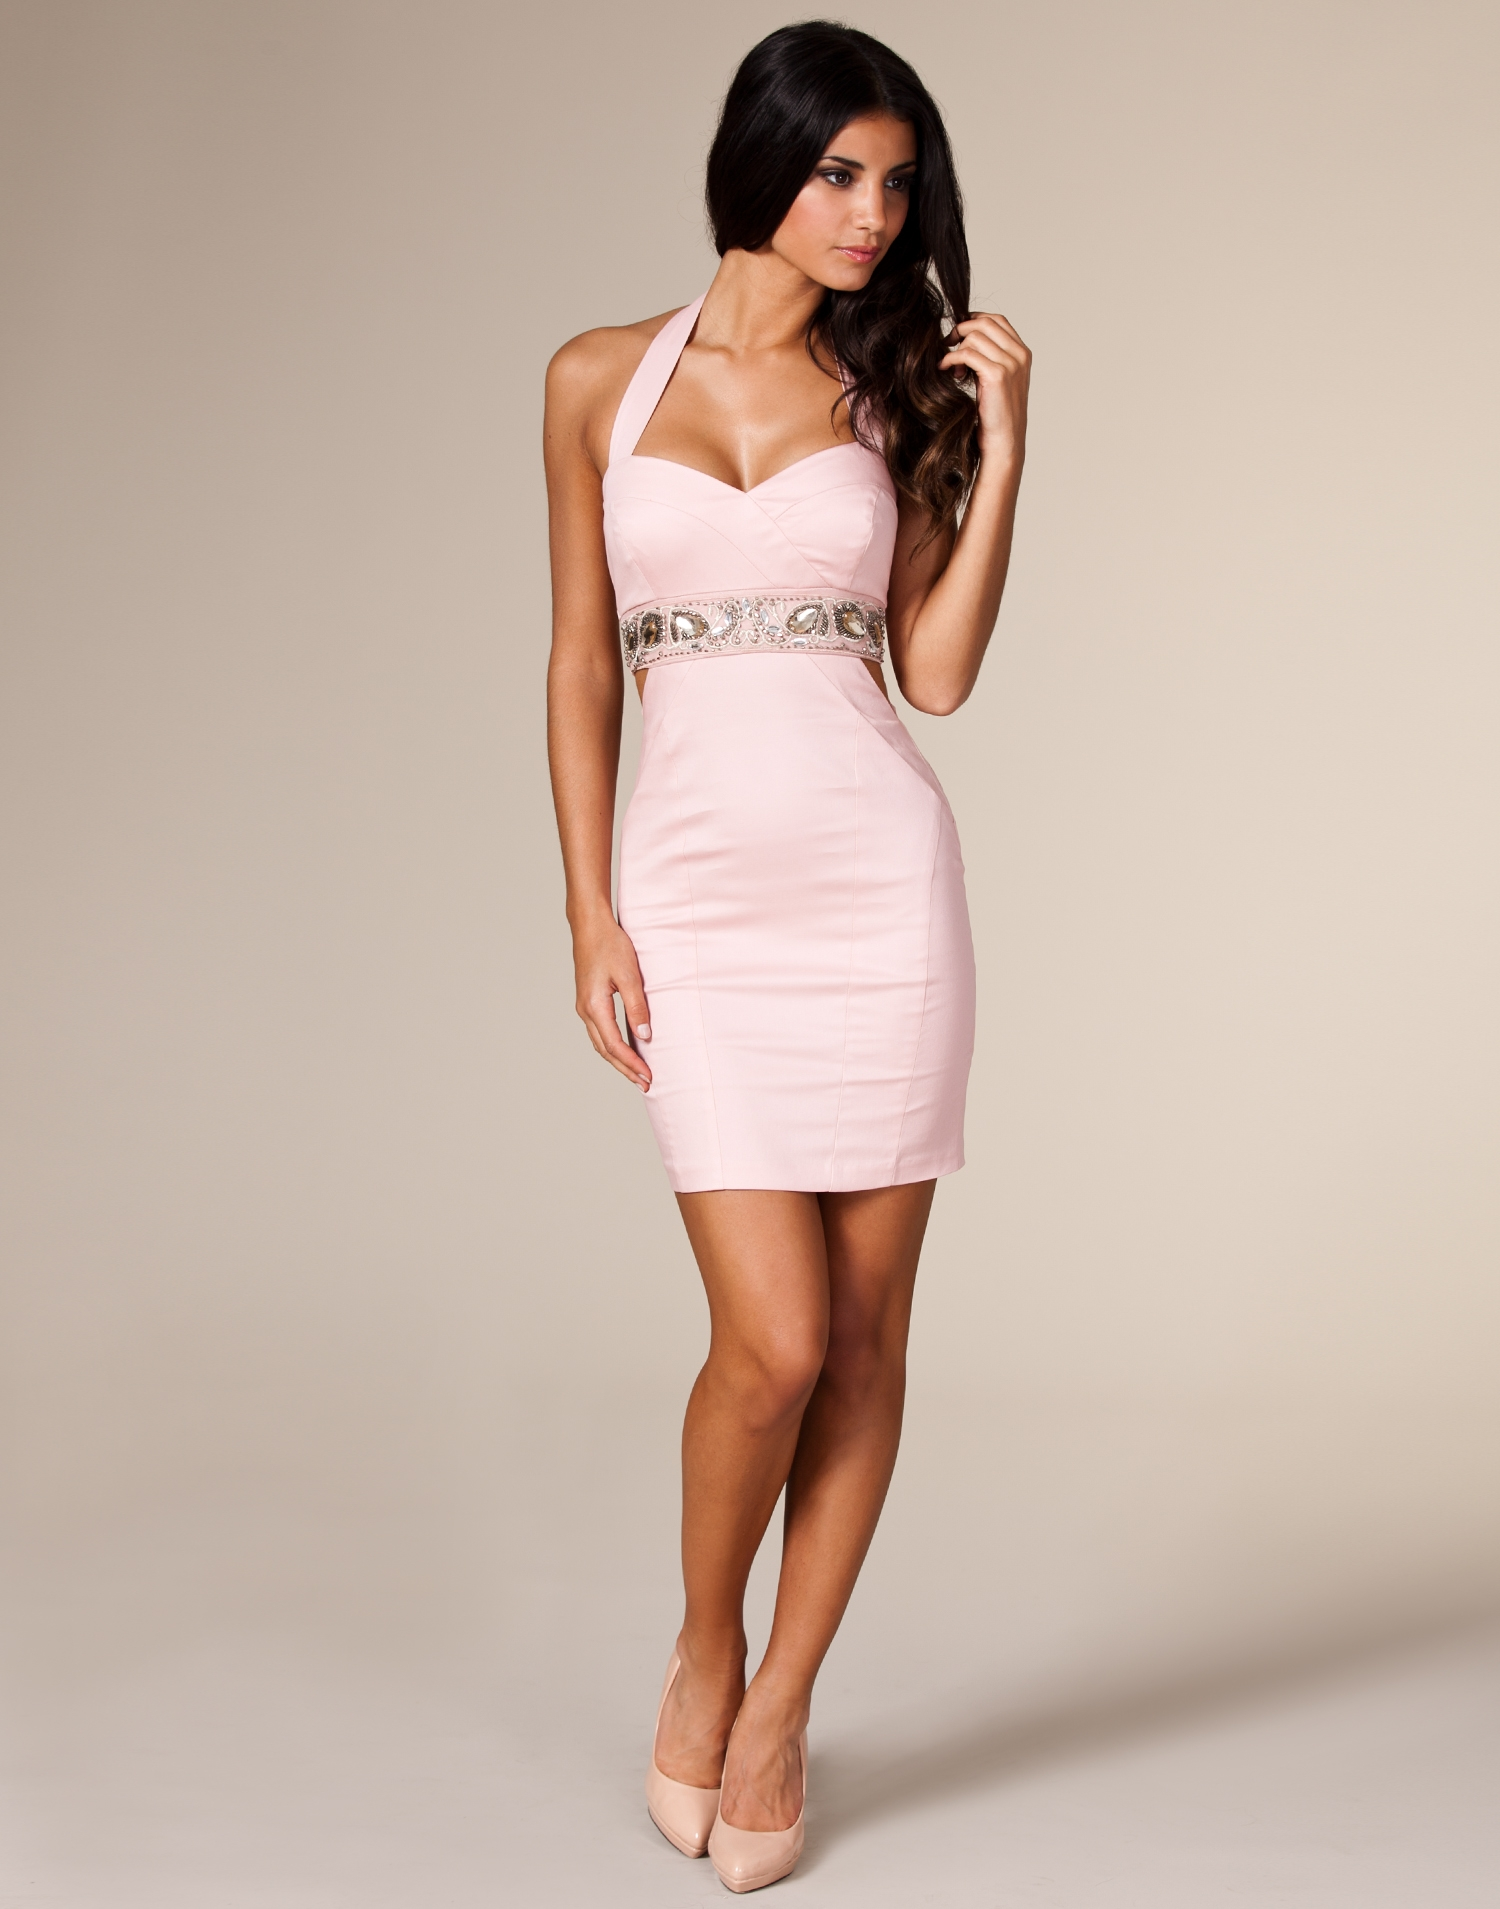 Silvester-Kleid. - fashion-is-life